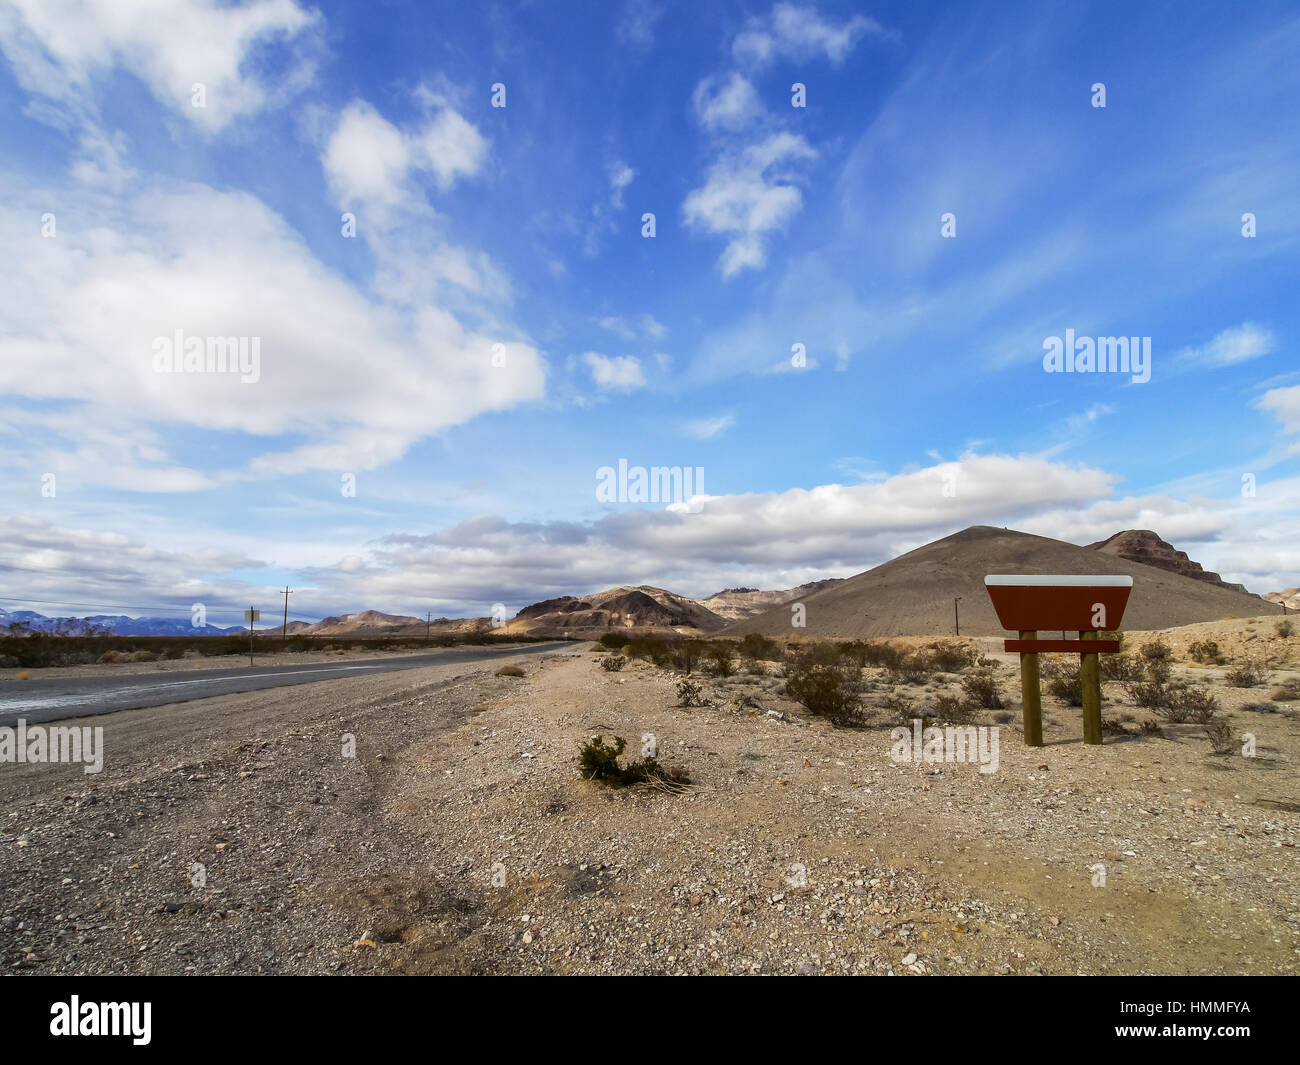 Entrance of Rhyolite, Nevada of United States. - Stock Image